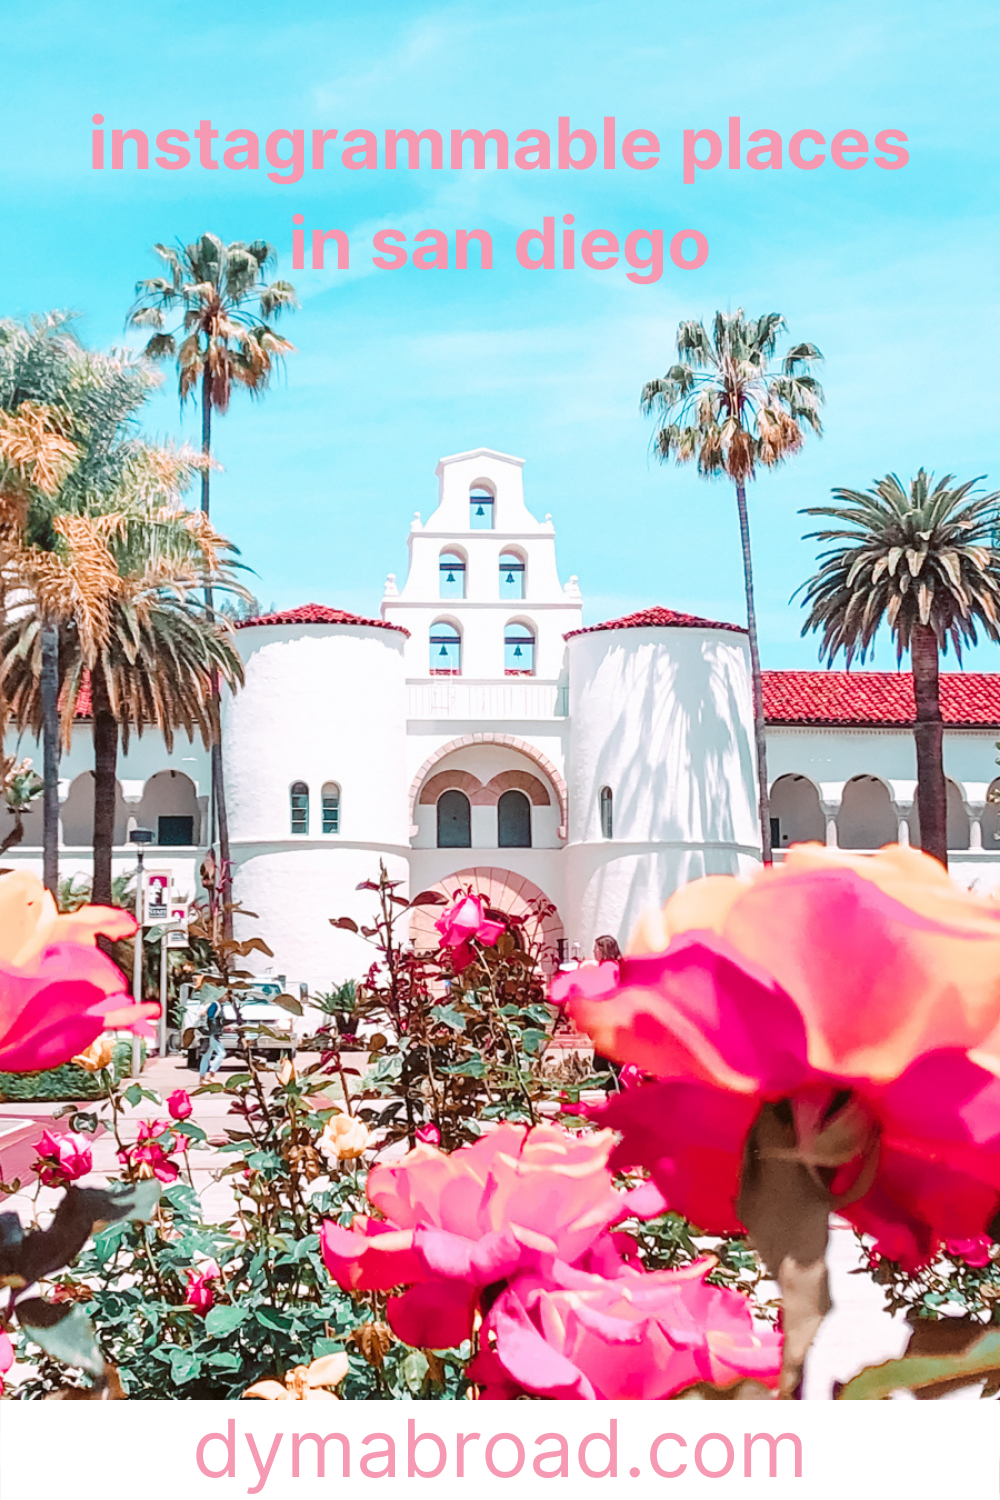 Instagrammable places in San Diego second Pinterest image